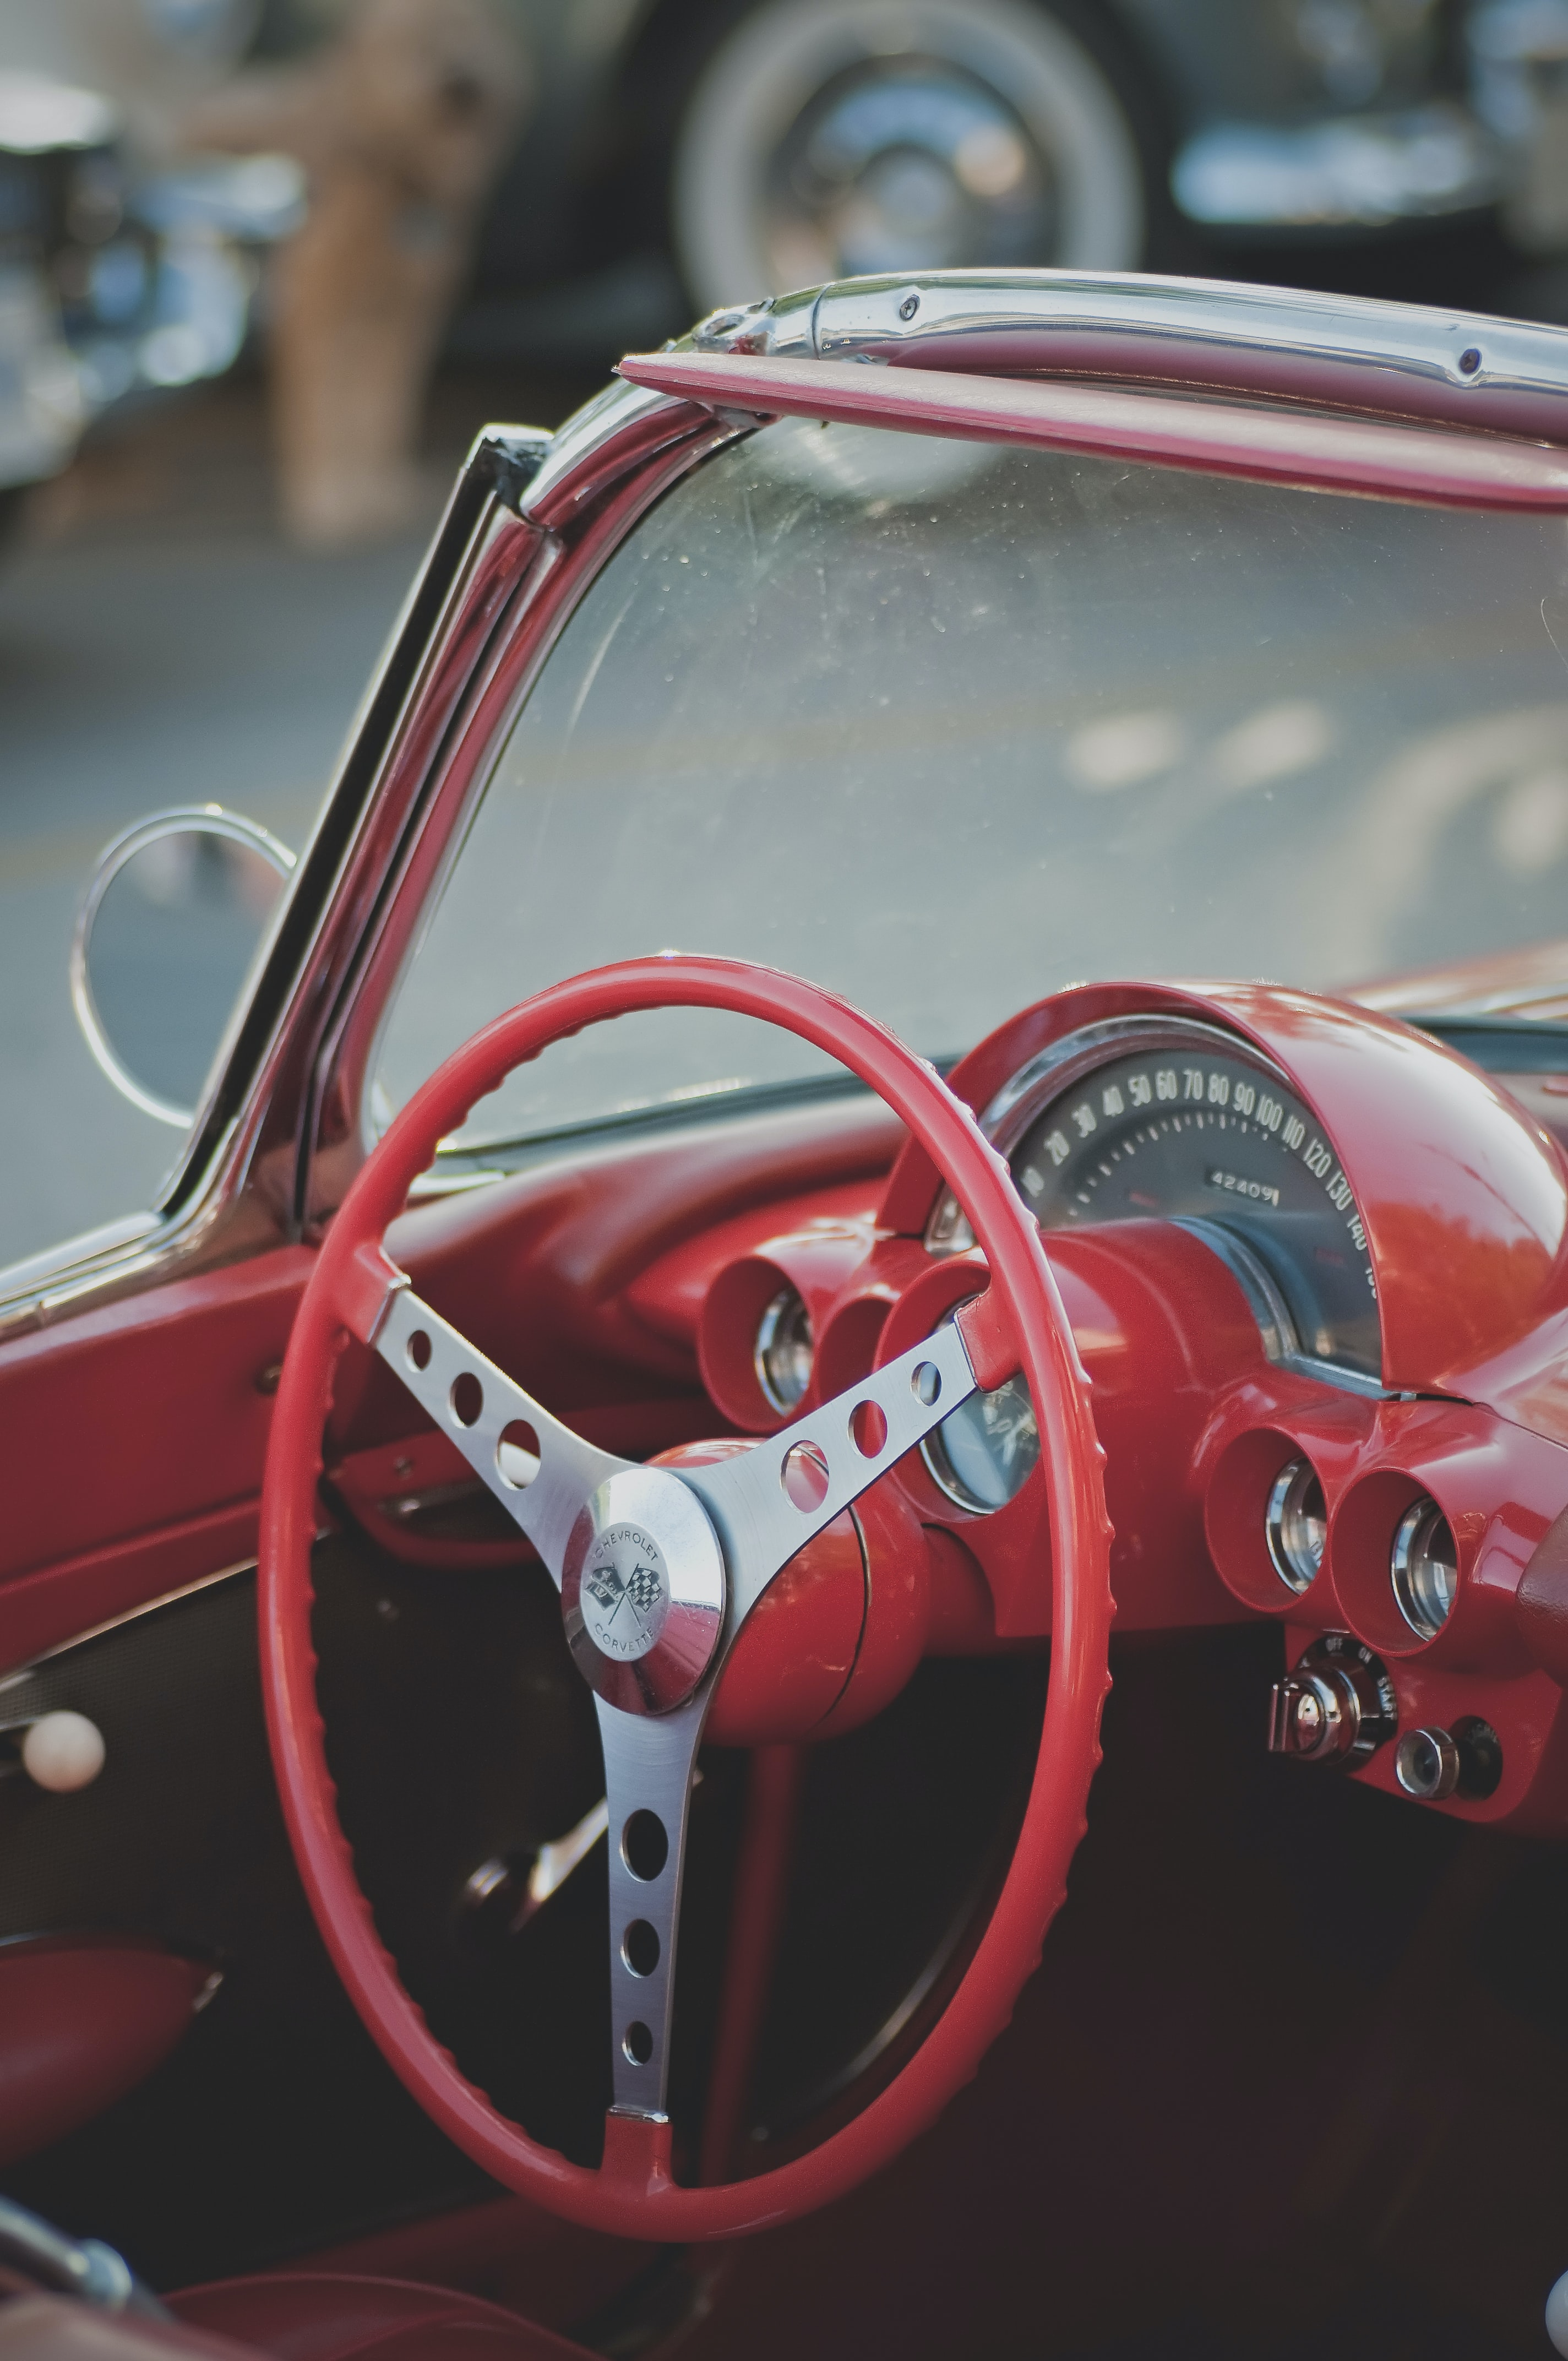 A red steering wheel inside a convertible with red interior.